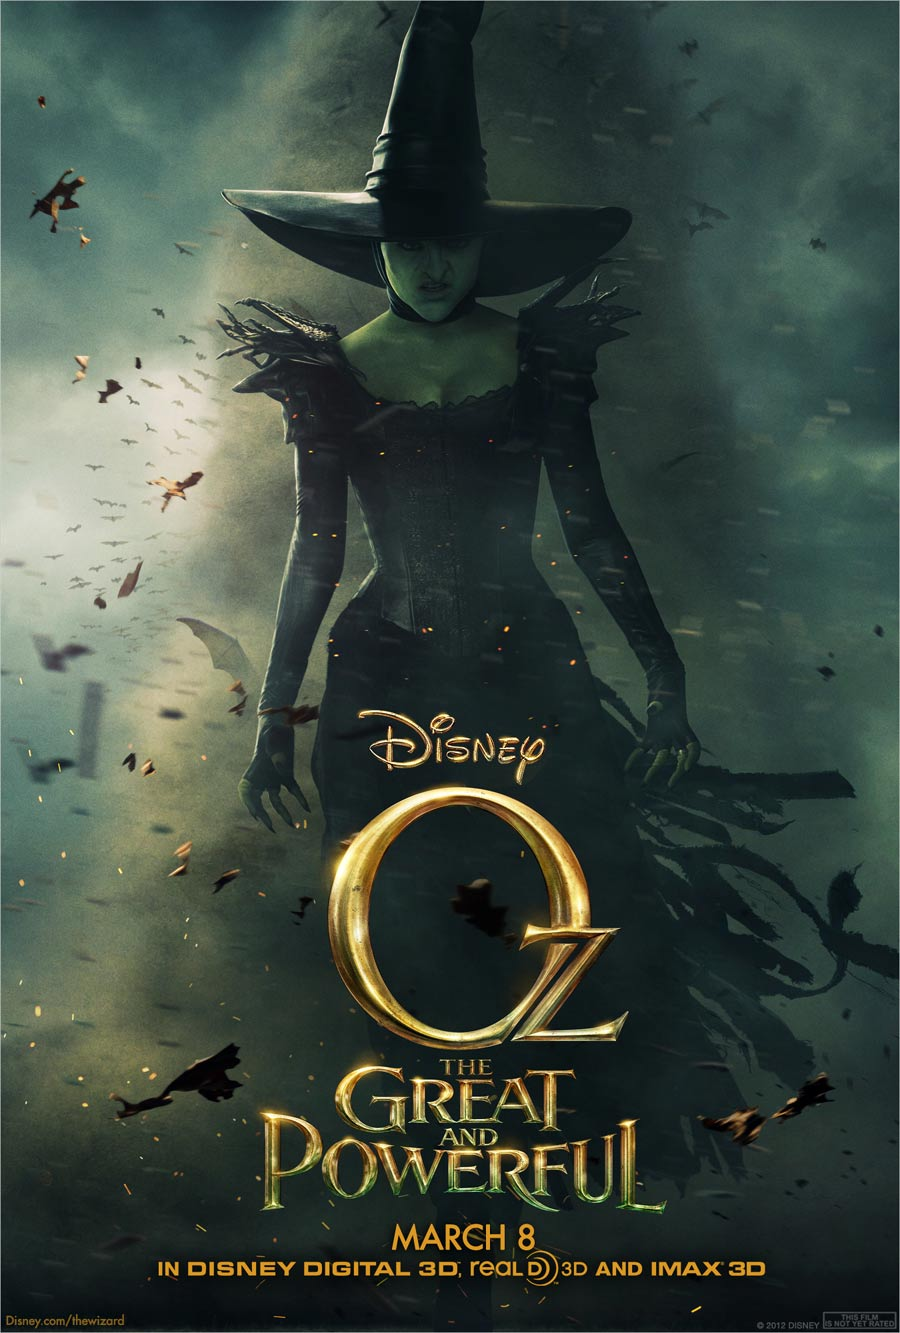 Oz: The Great and Powerful poster is a little intimidating